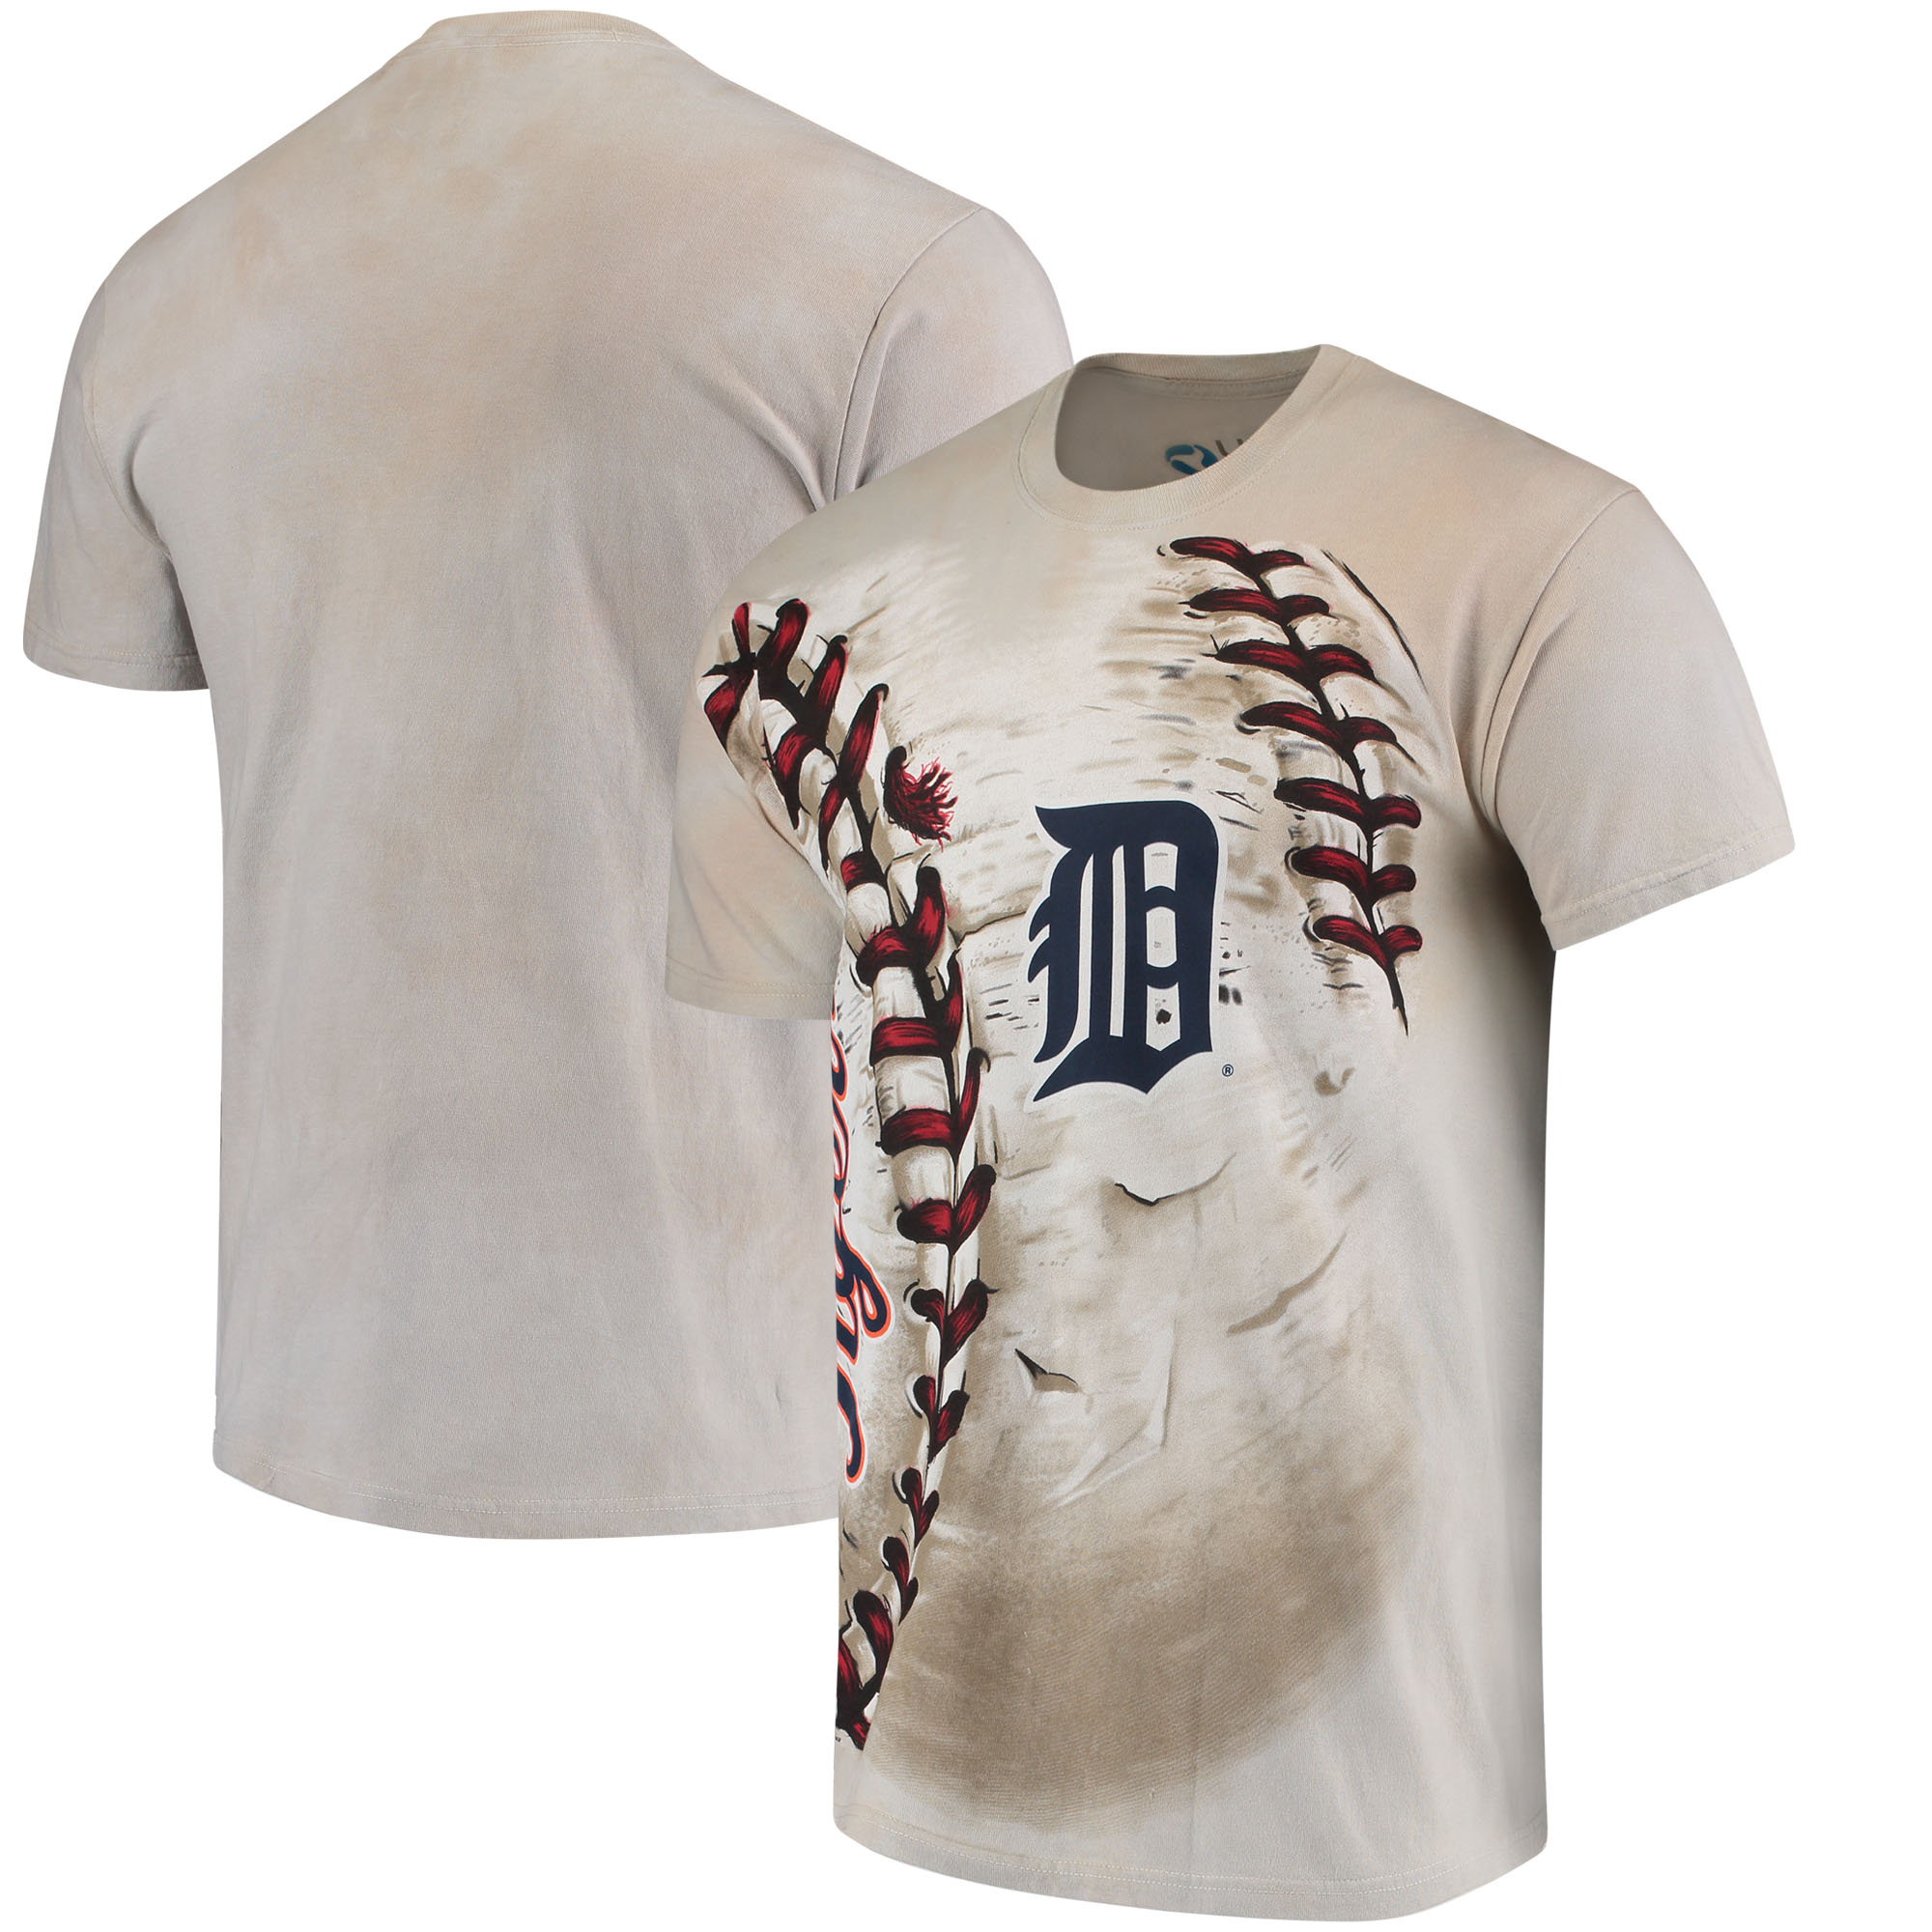 Detroit Tigers Hardball Tie-Dye T-Shirt - Cream